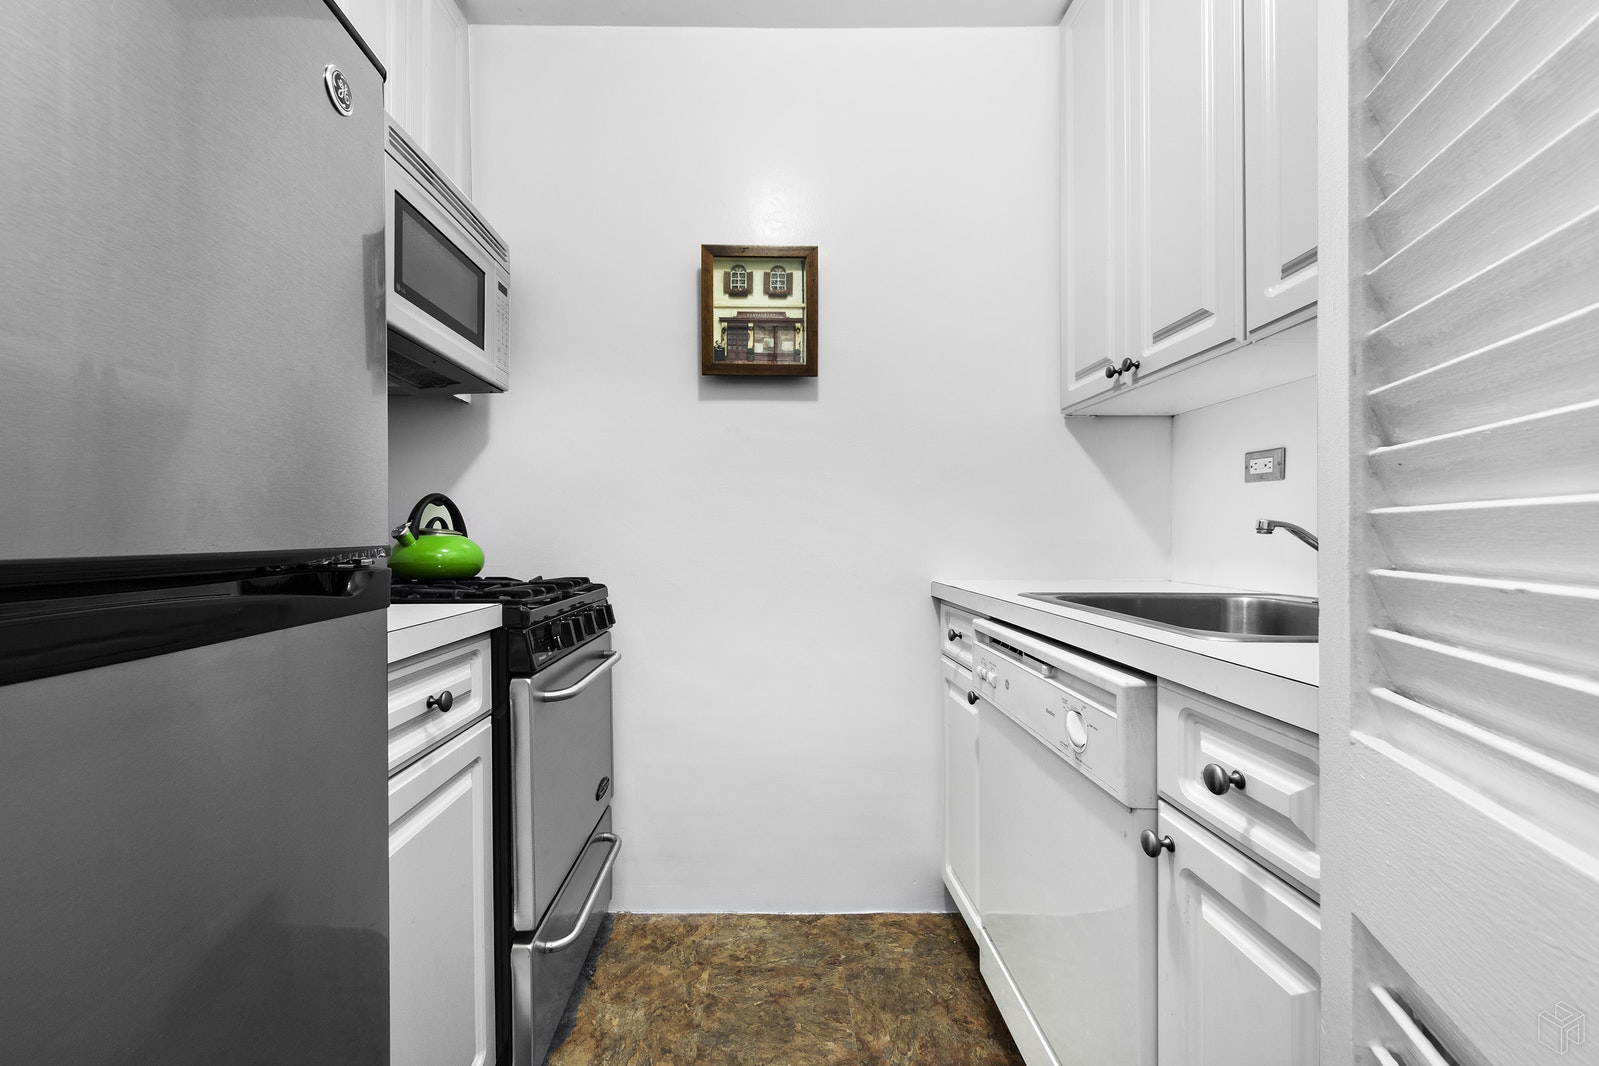 165 WEST 66TH STREET 10T, Upper West Side, $515,000, Web #: 17045657